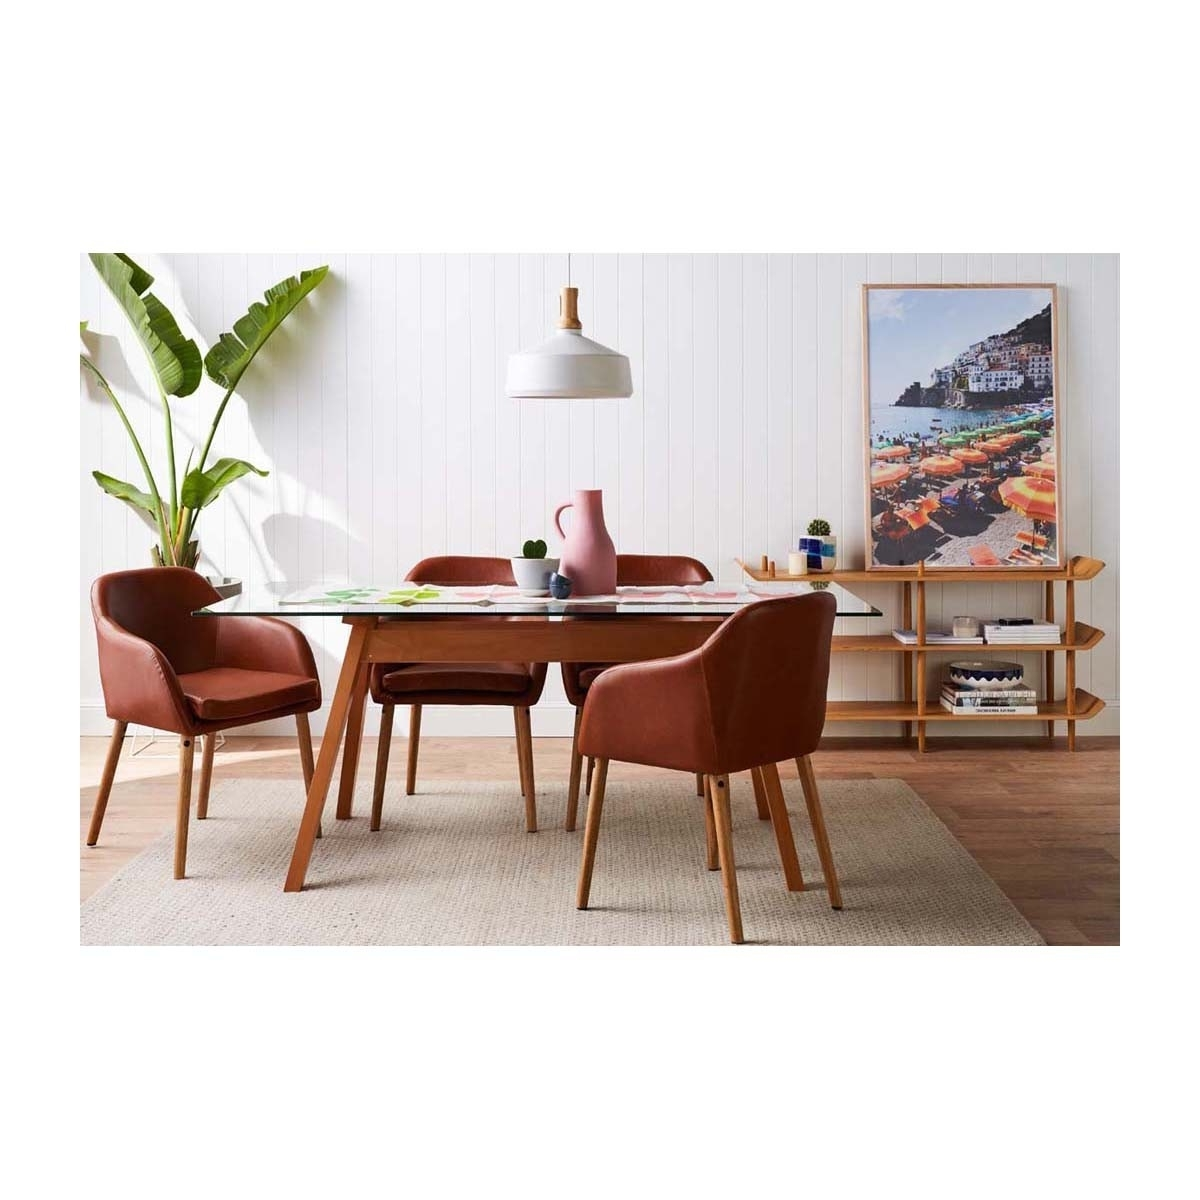 Life Interiors – Hudson Dining Chair (Tan Leatherette) – Modern With Regard To Well Known Hudson Dining Tables And Chairs (View 15 of 25)